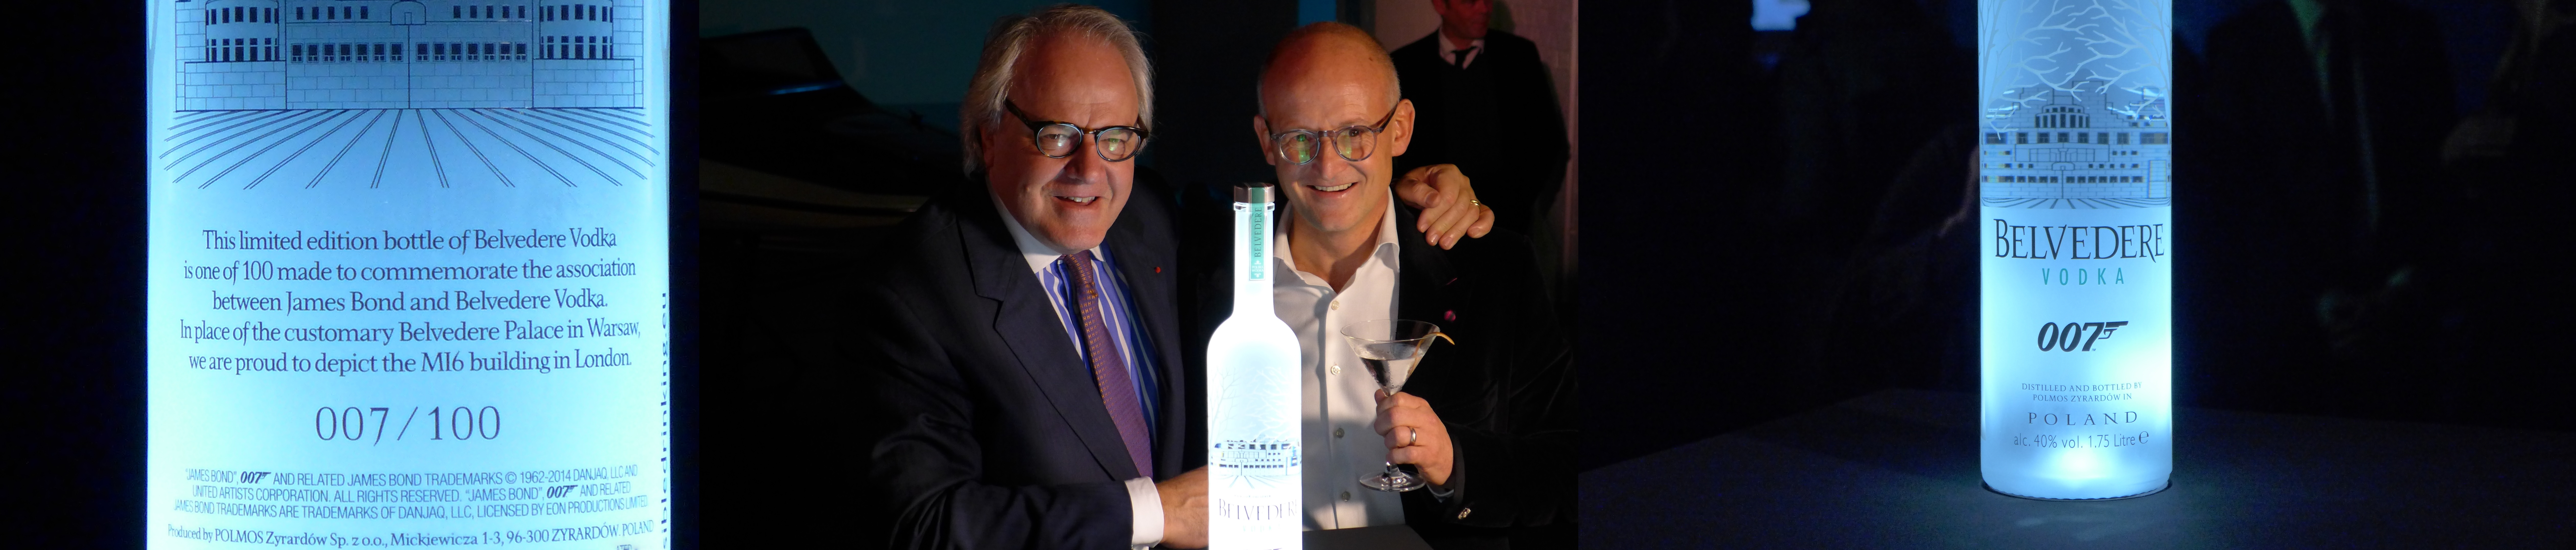 Moet Hennessy's CEO Christophe  Navarre & Belvedere's Charles Gibb unveil the new MI6 bottle